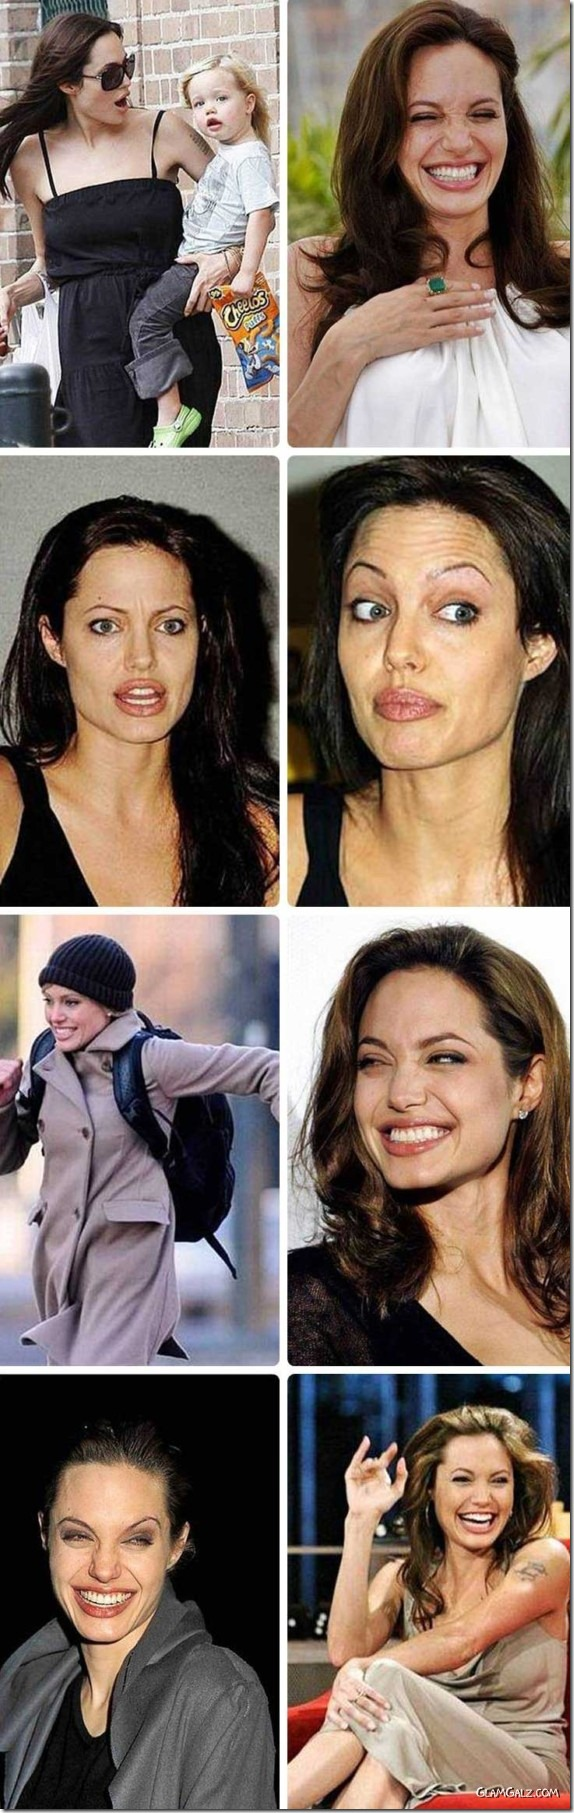 angelina jolie mil caretos (3)